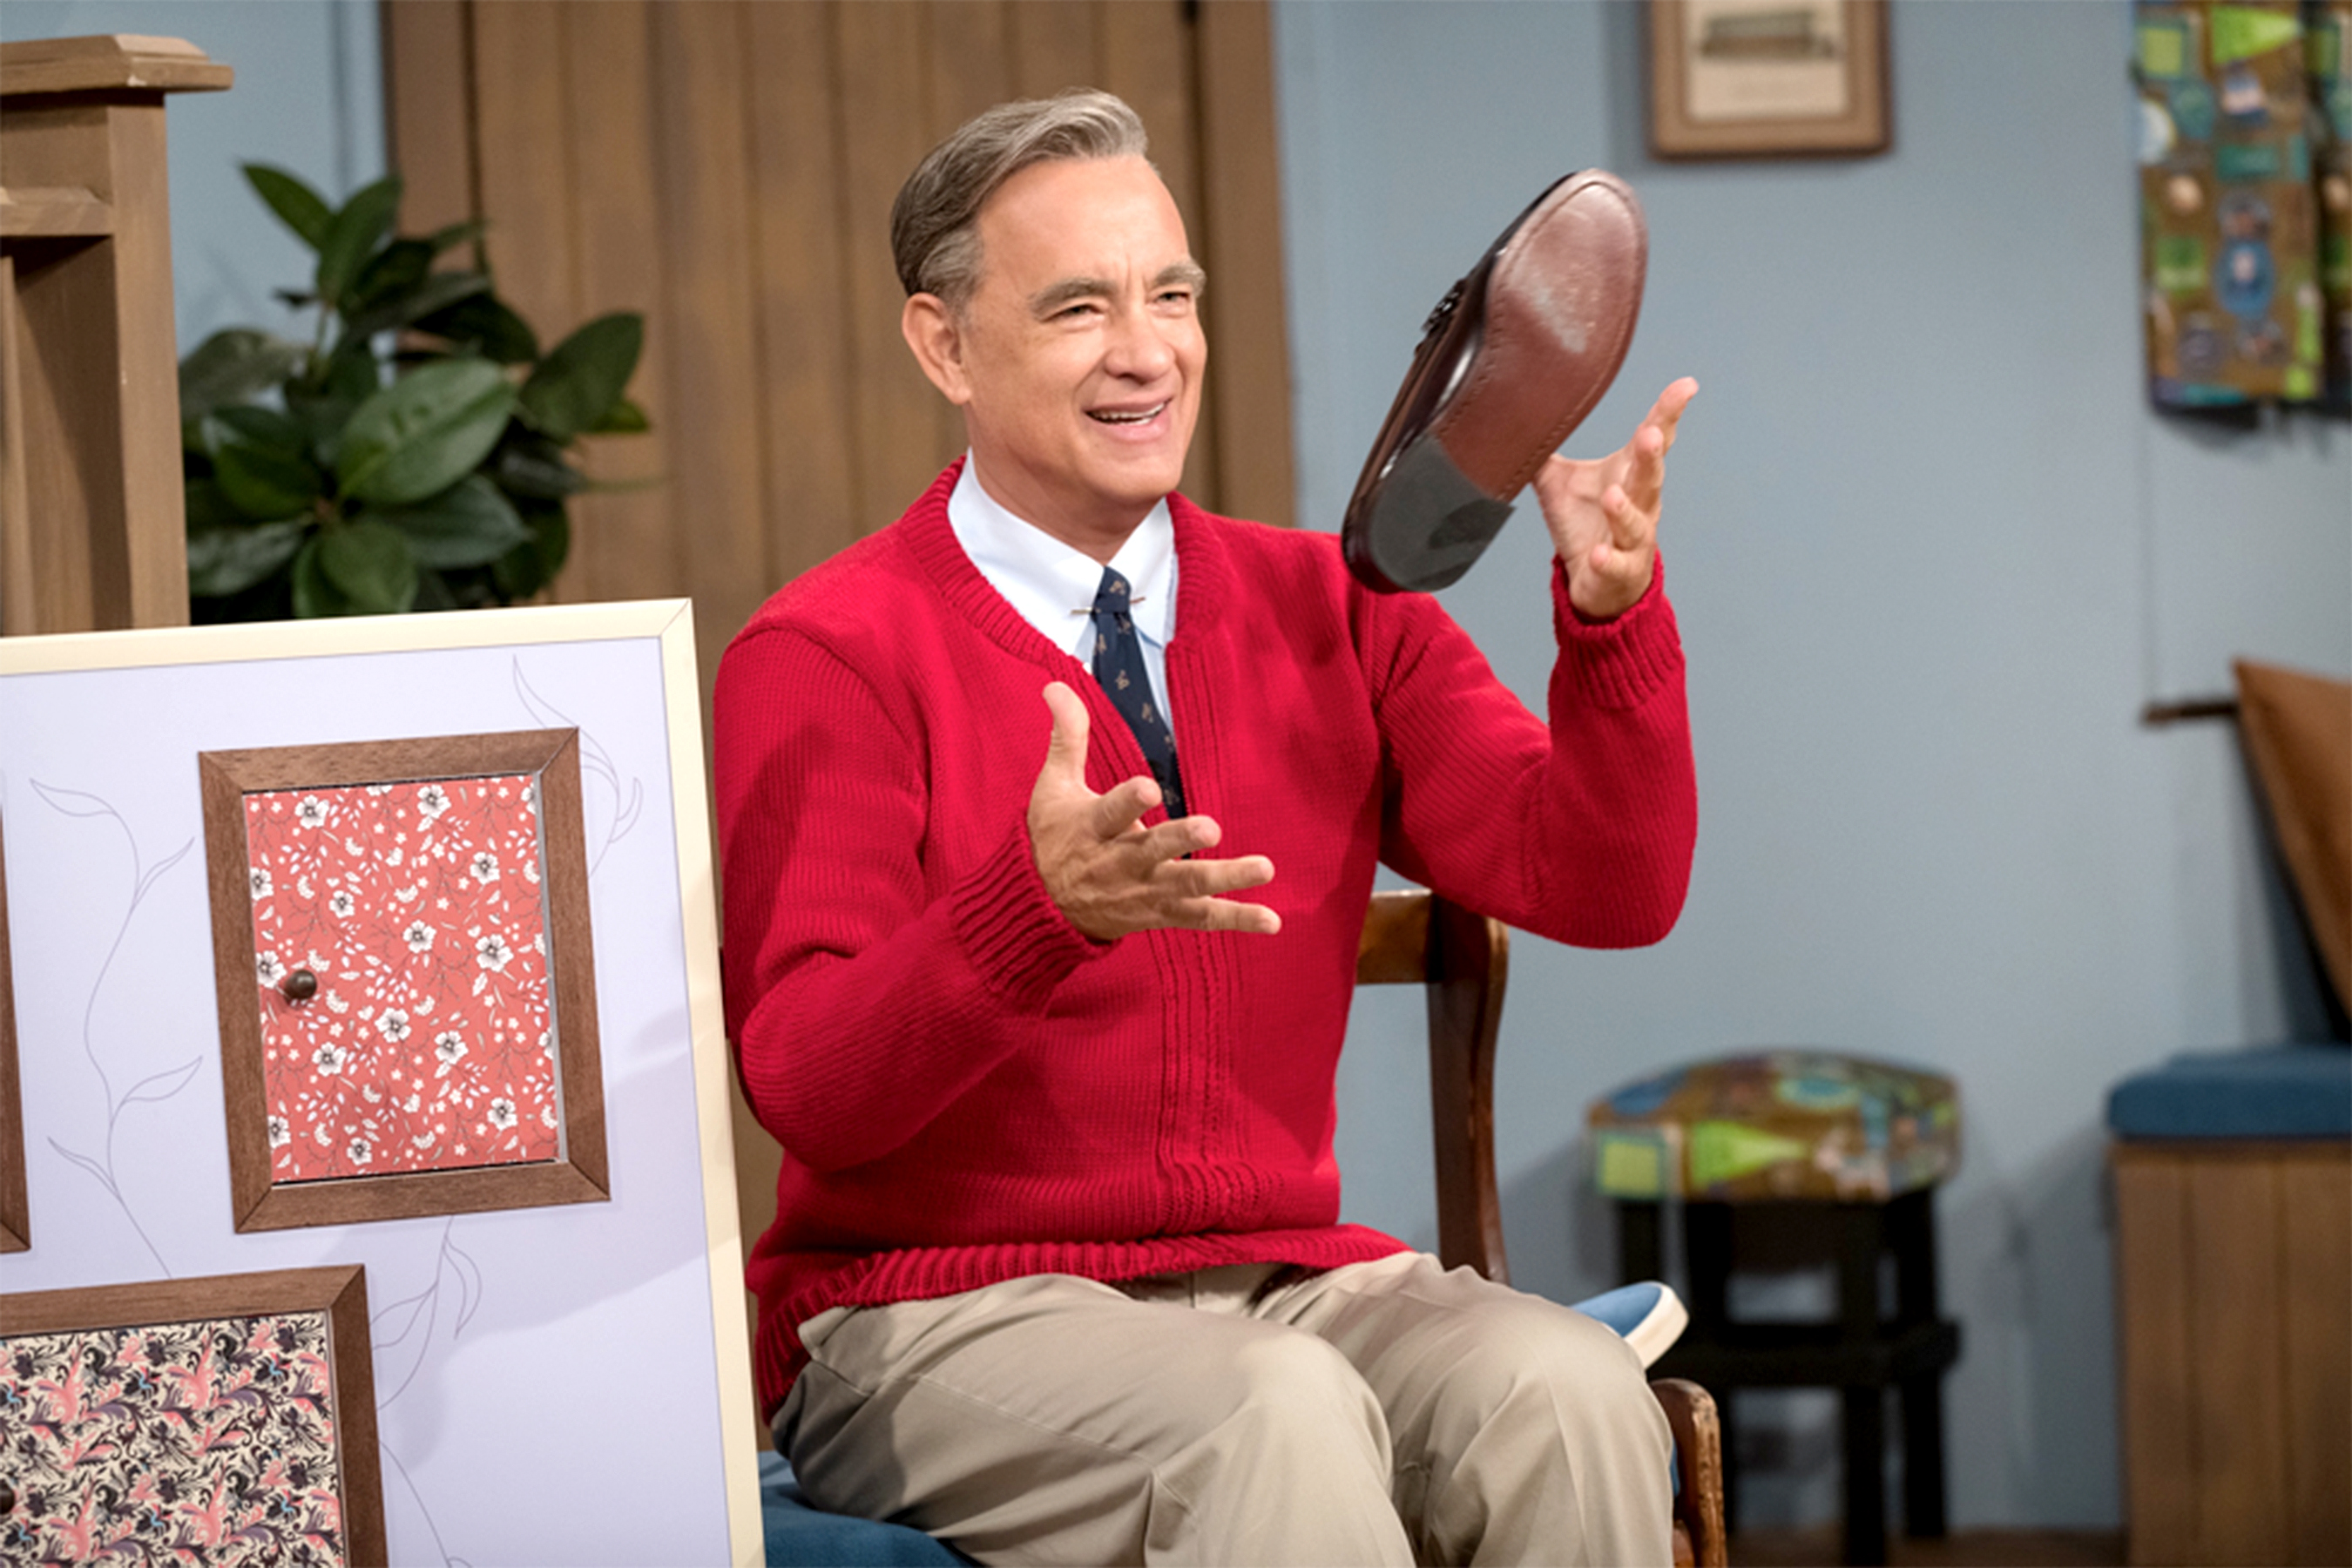 Tom Hanks Looks Just Like Mr. Rogers in New Photo from 'A Beautiful Day in the Neighborhood'